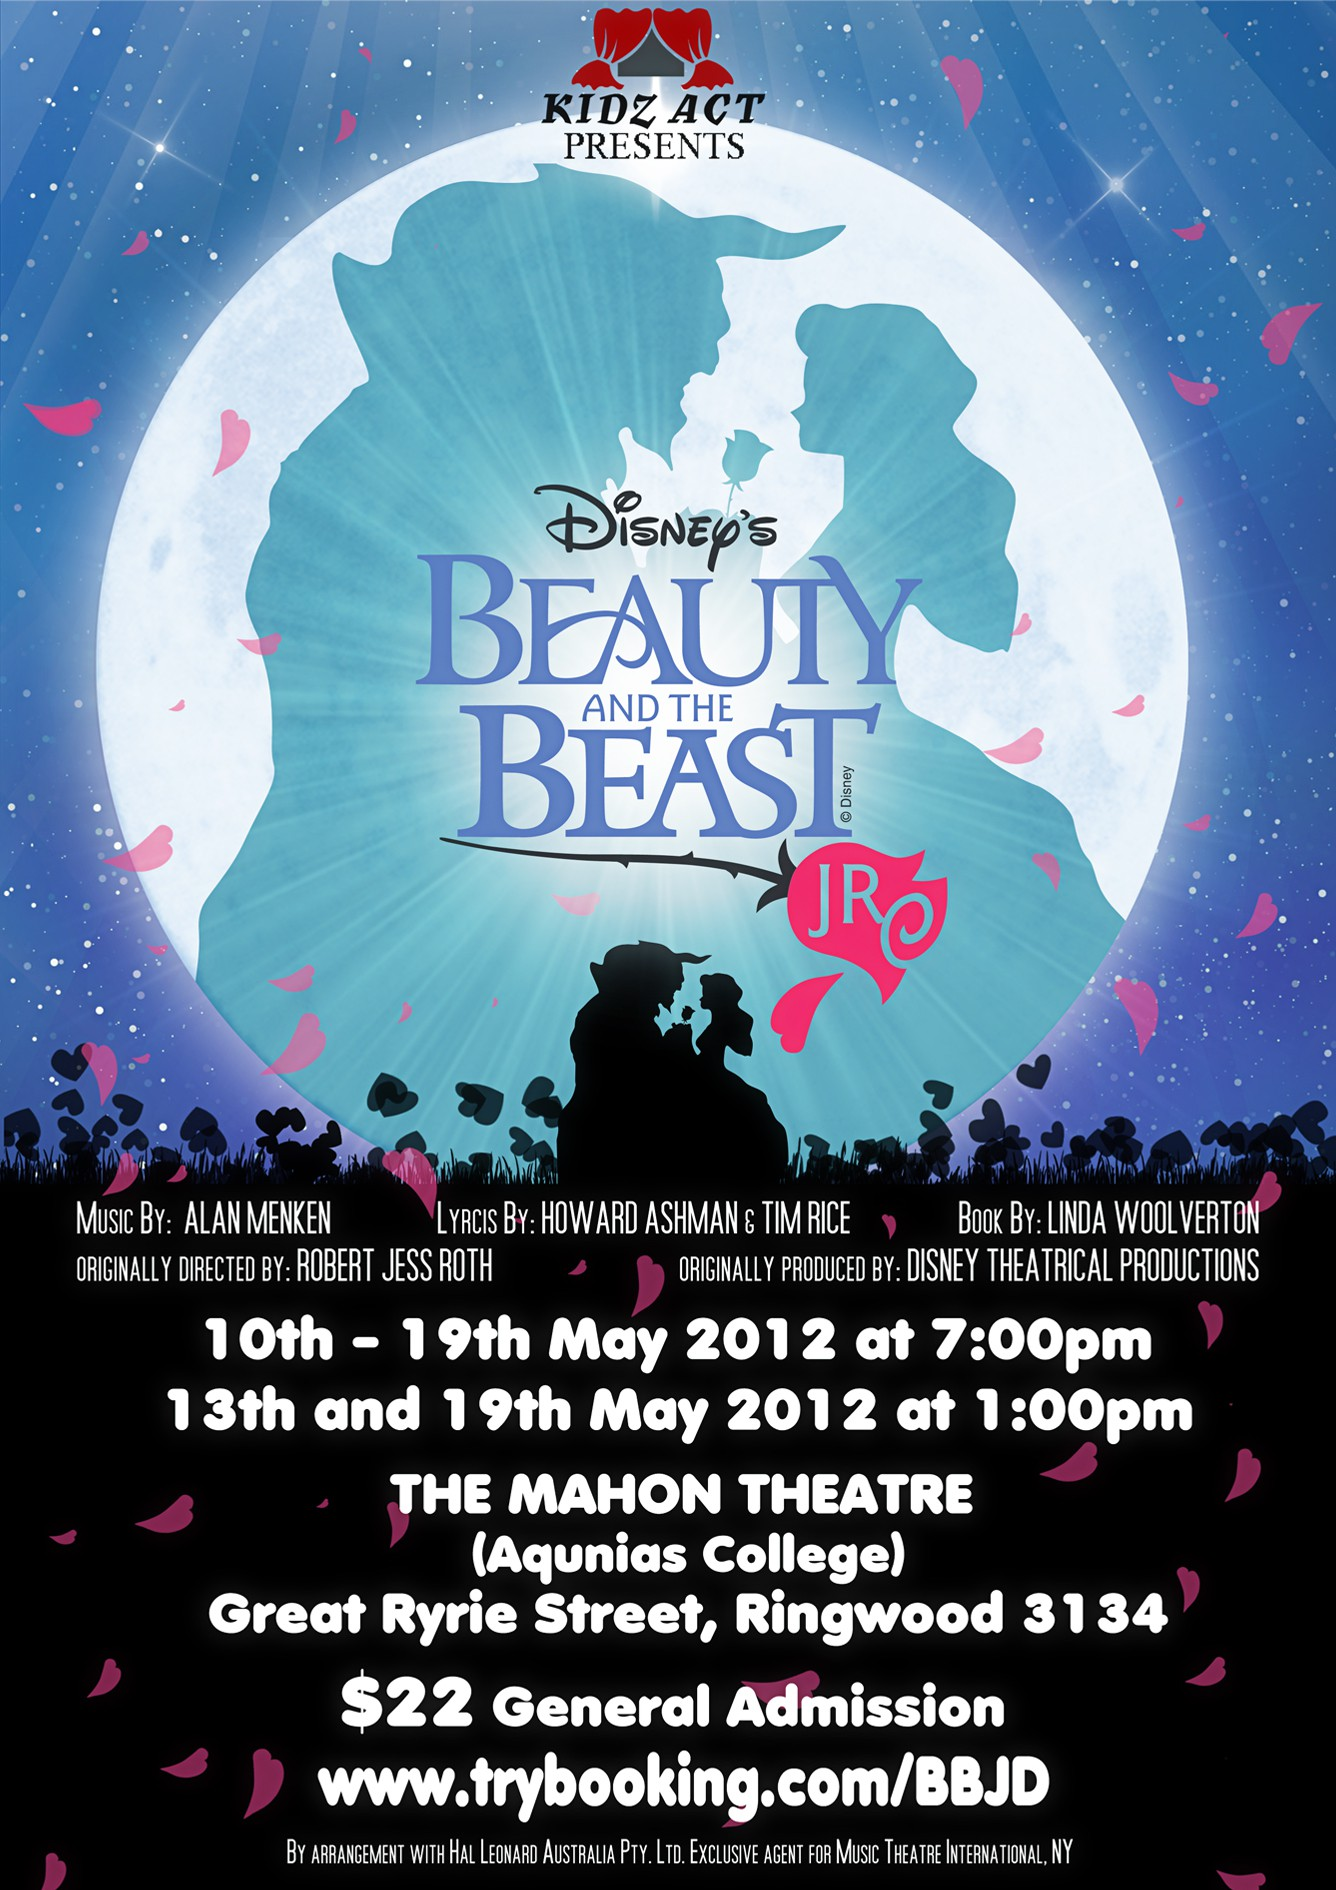 New print or packaging design wanted for BEAUTY AND THE BEAST JR. A4 Flyer Needed